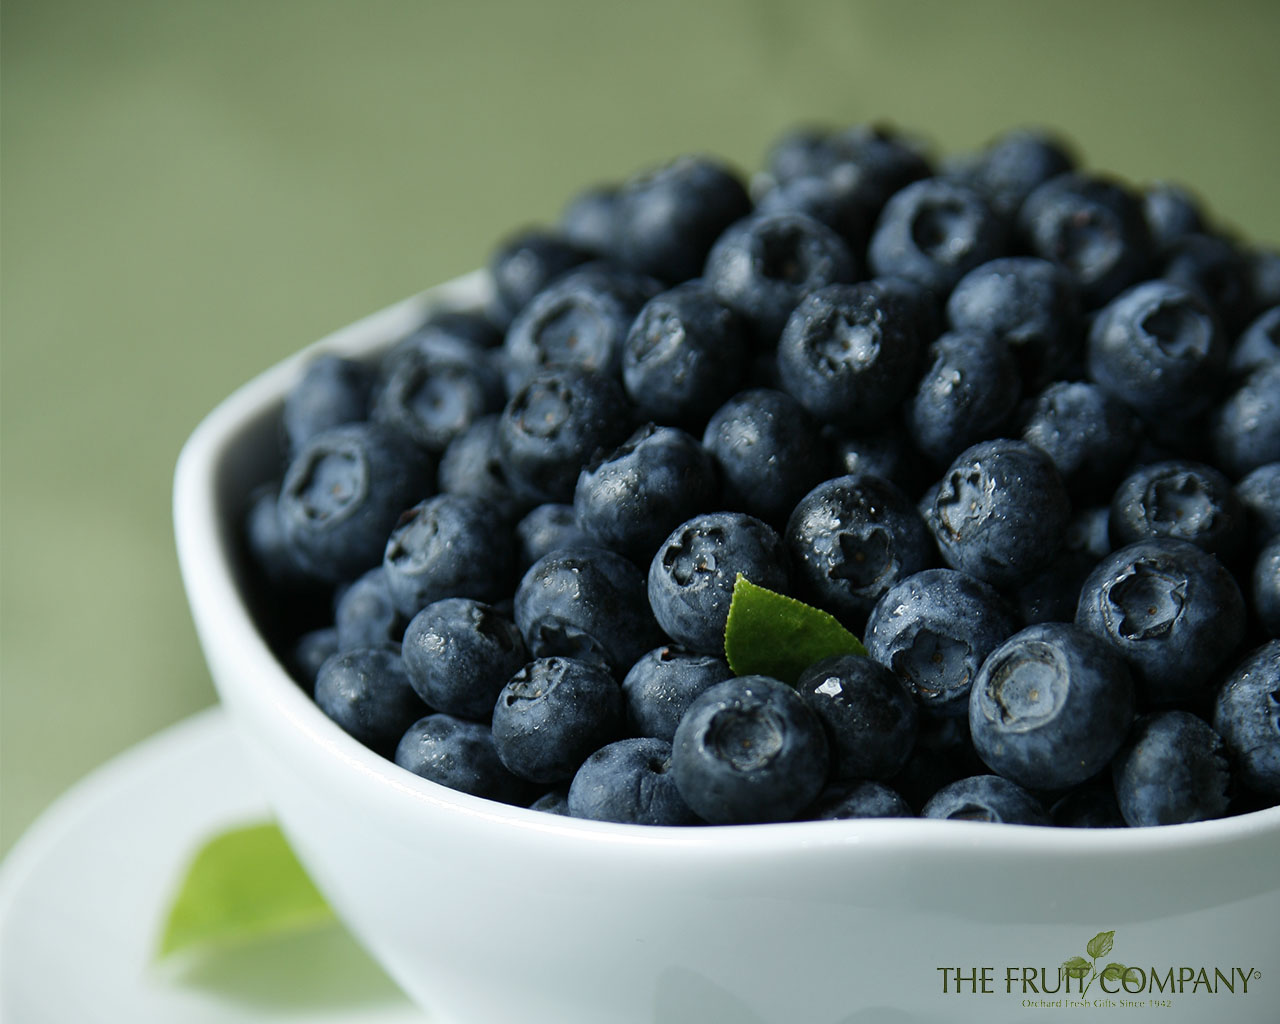 Delicious Blueberry Wallpaper